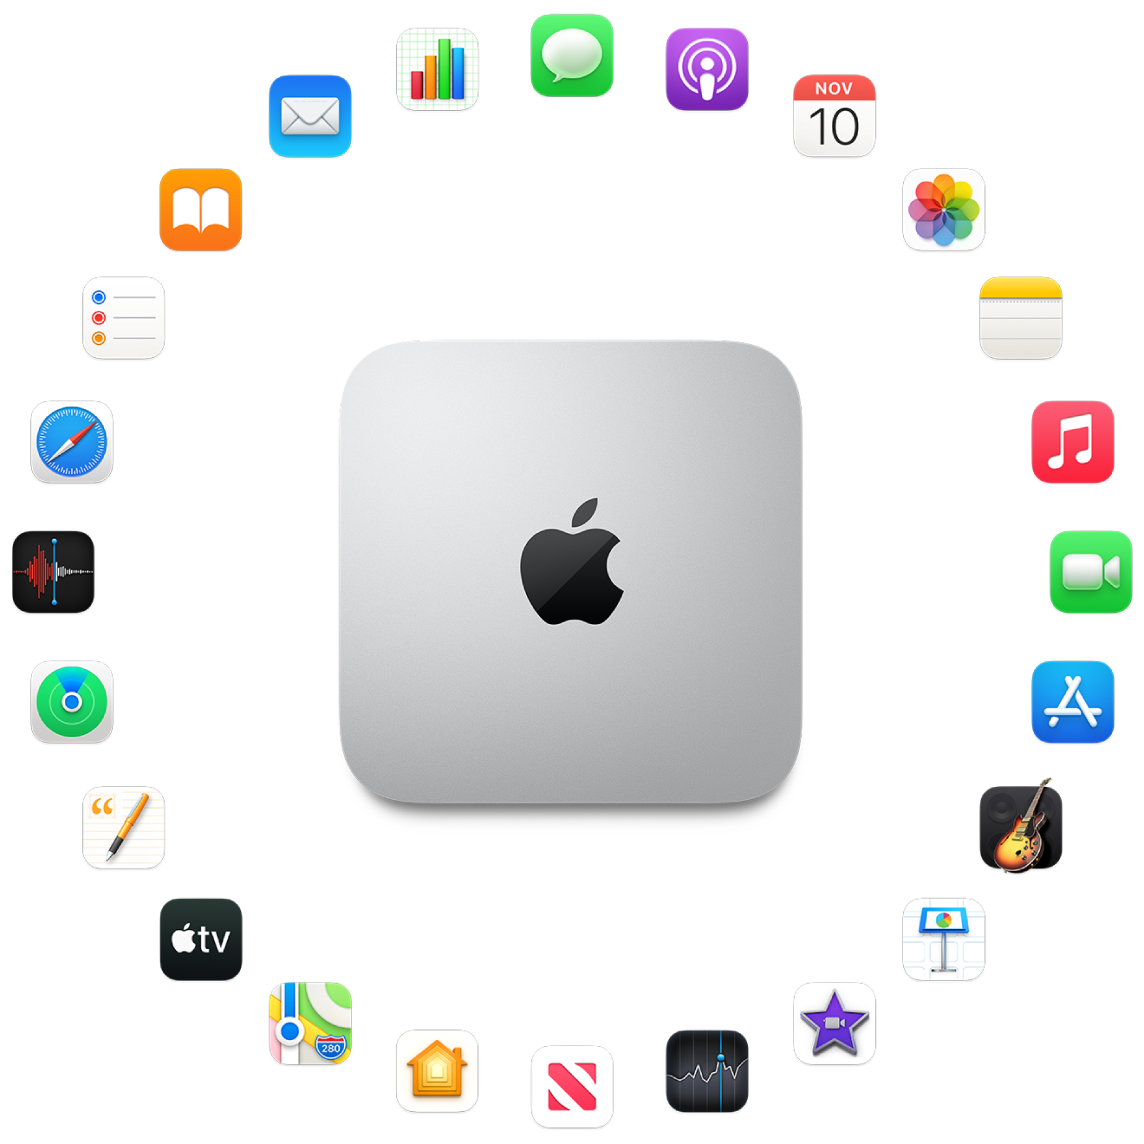 A Mac mini surrounded by the icons for the built-in apps described in the following sections.